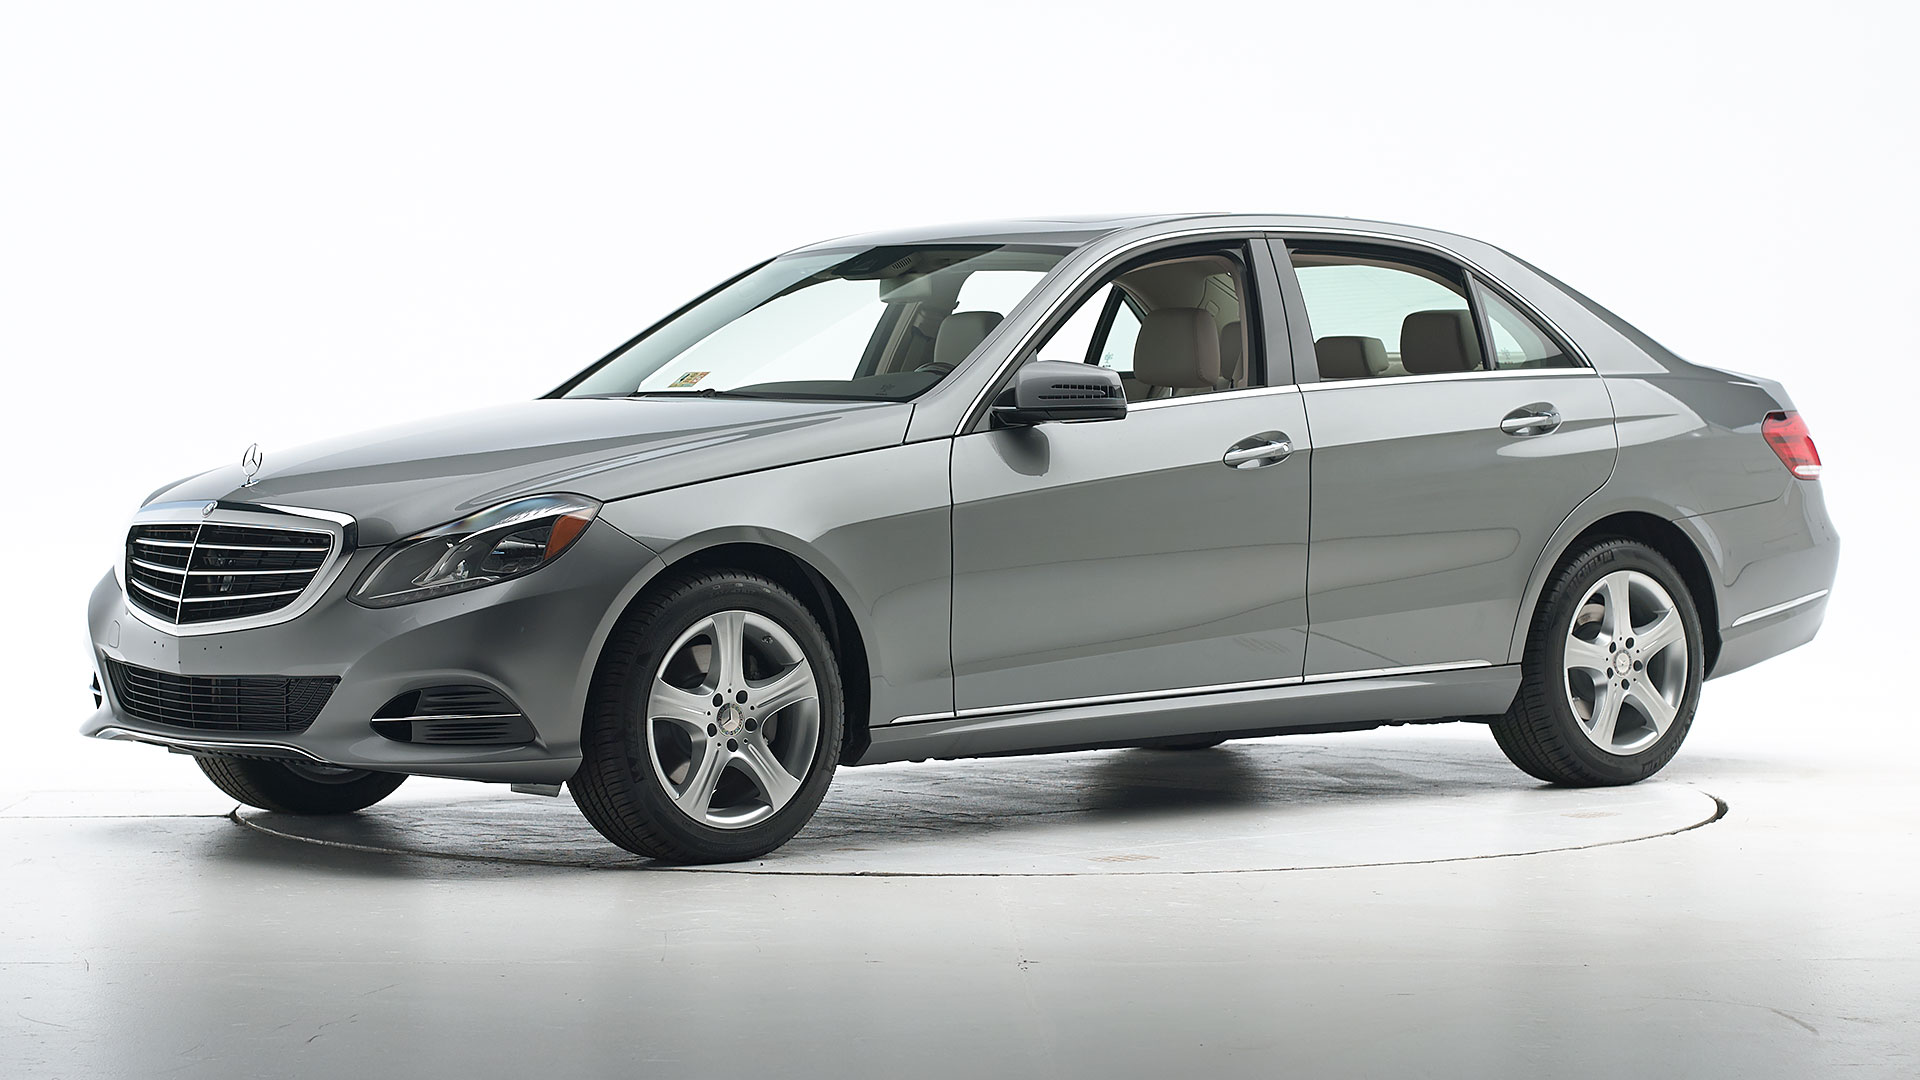 2014 Mercedes-Benz E-Class 4-door sedan